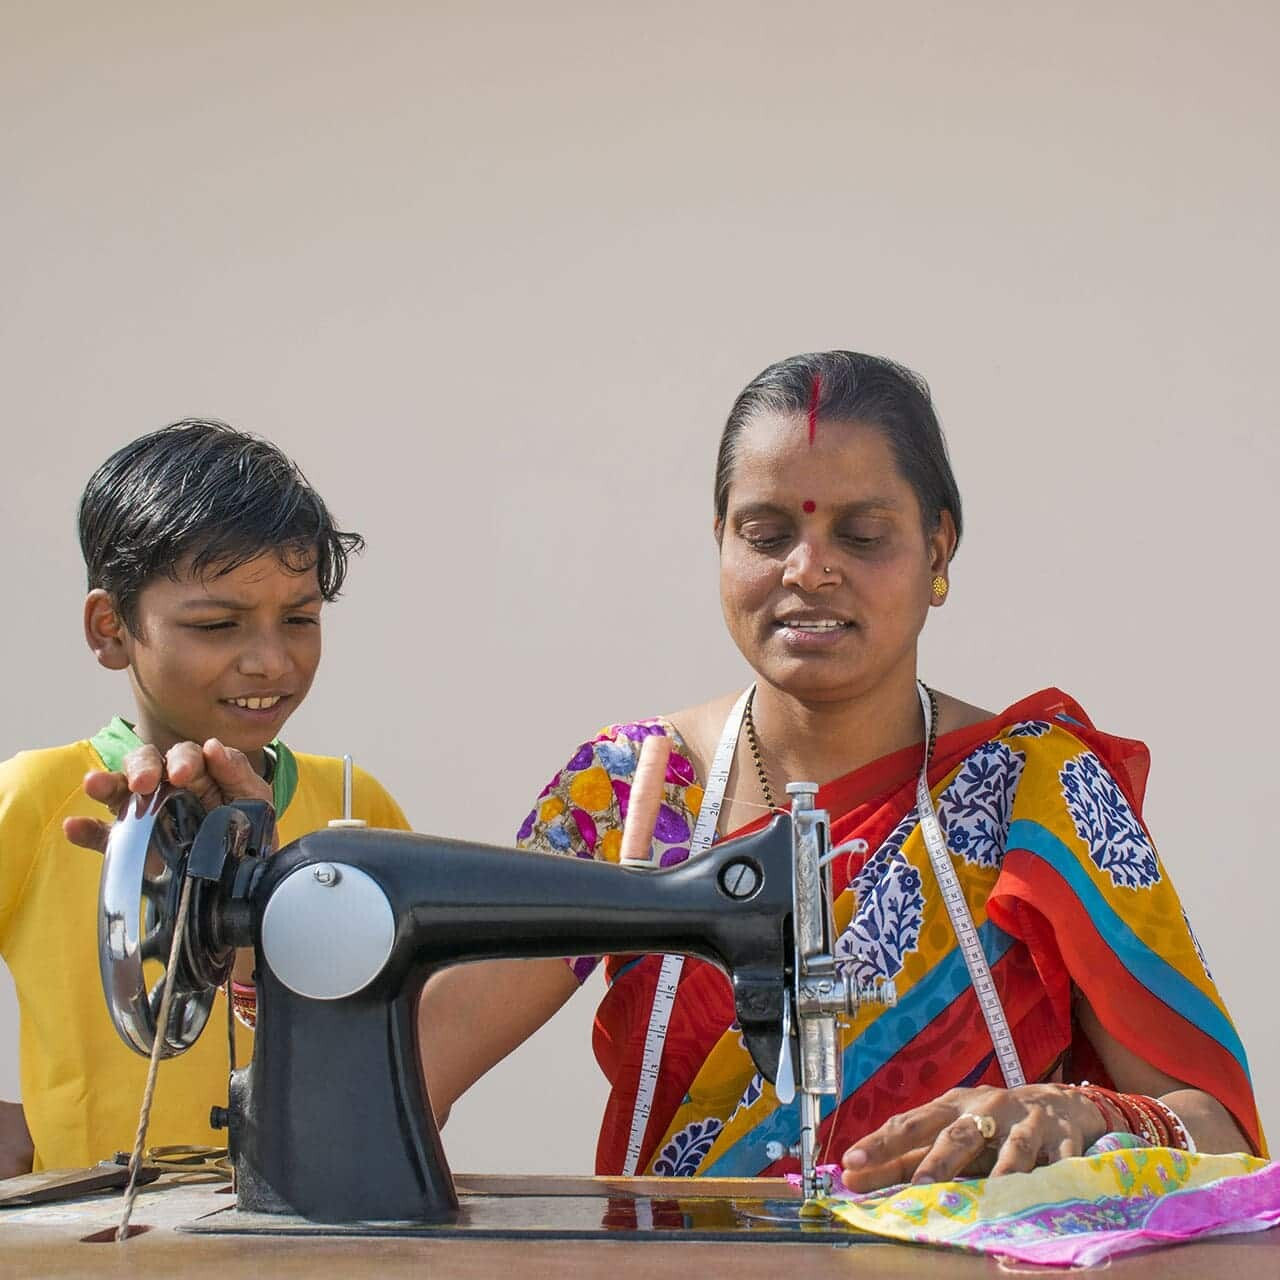 indian woman and boy sewing